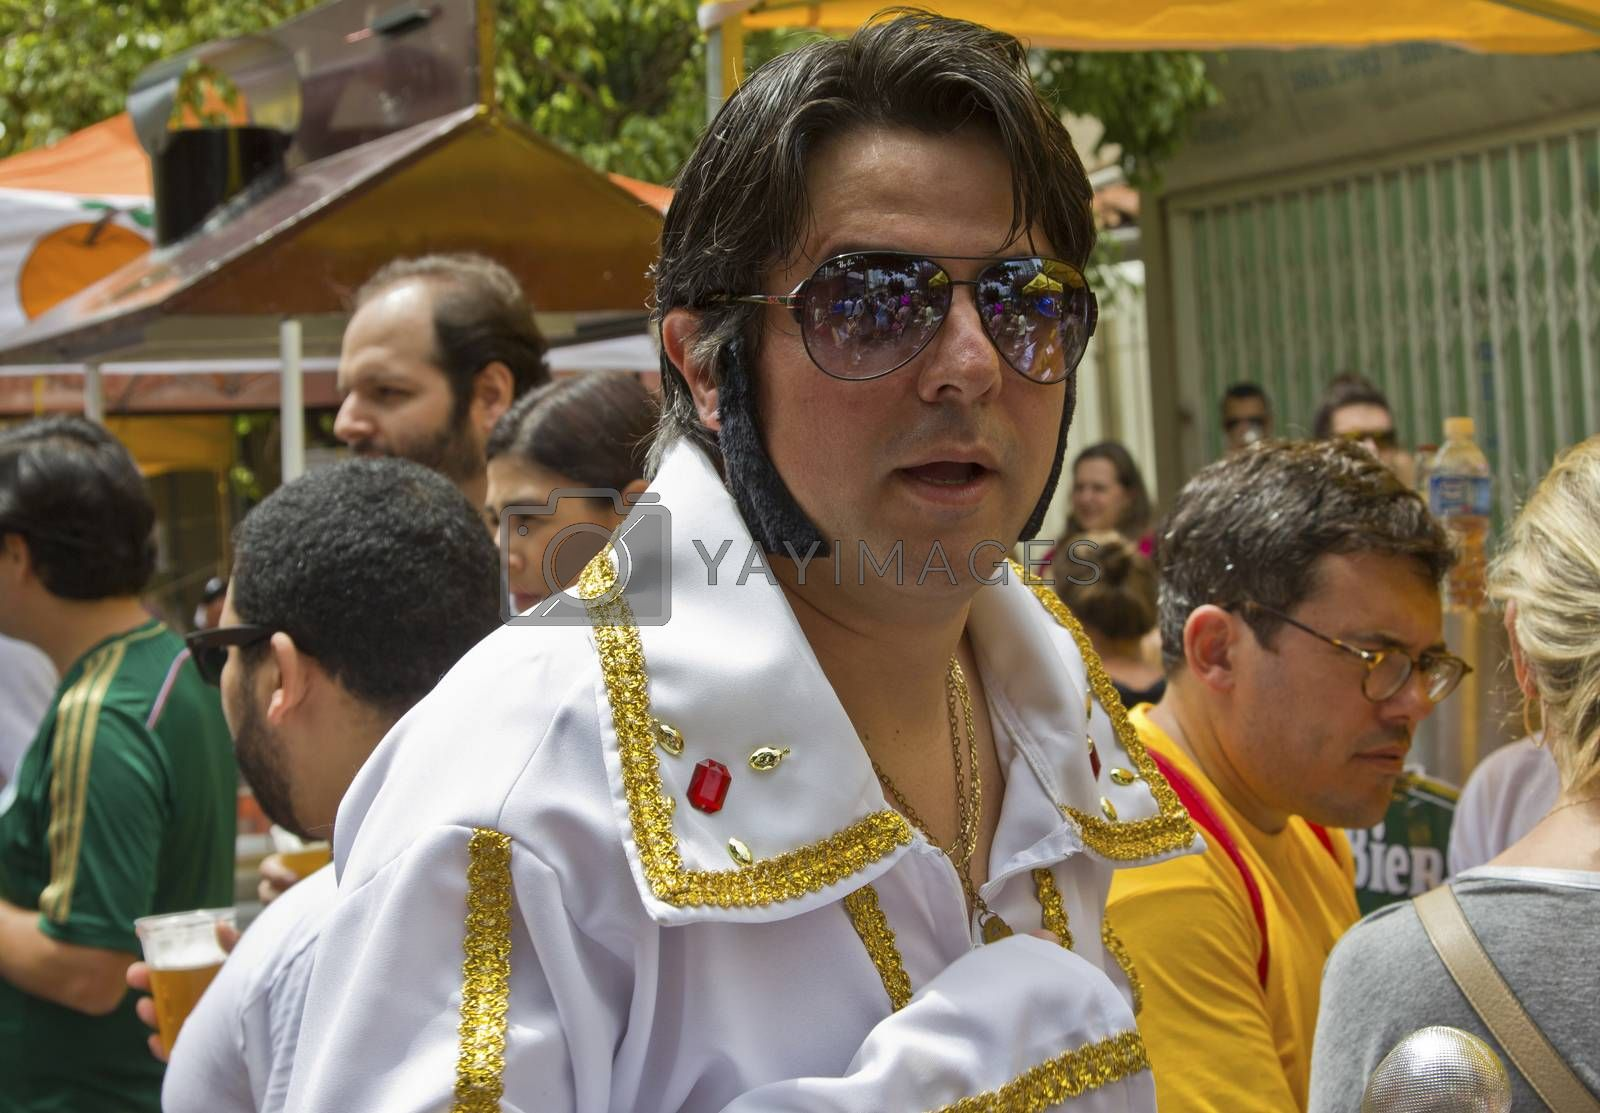 SAO PAULO, BRAZIL - JANUARY 31, 2015: An unidentified man dressed like Elvis Presley participate in the annual Brazilian street carnival dancing and singing samba.